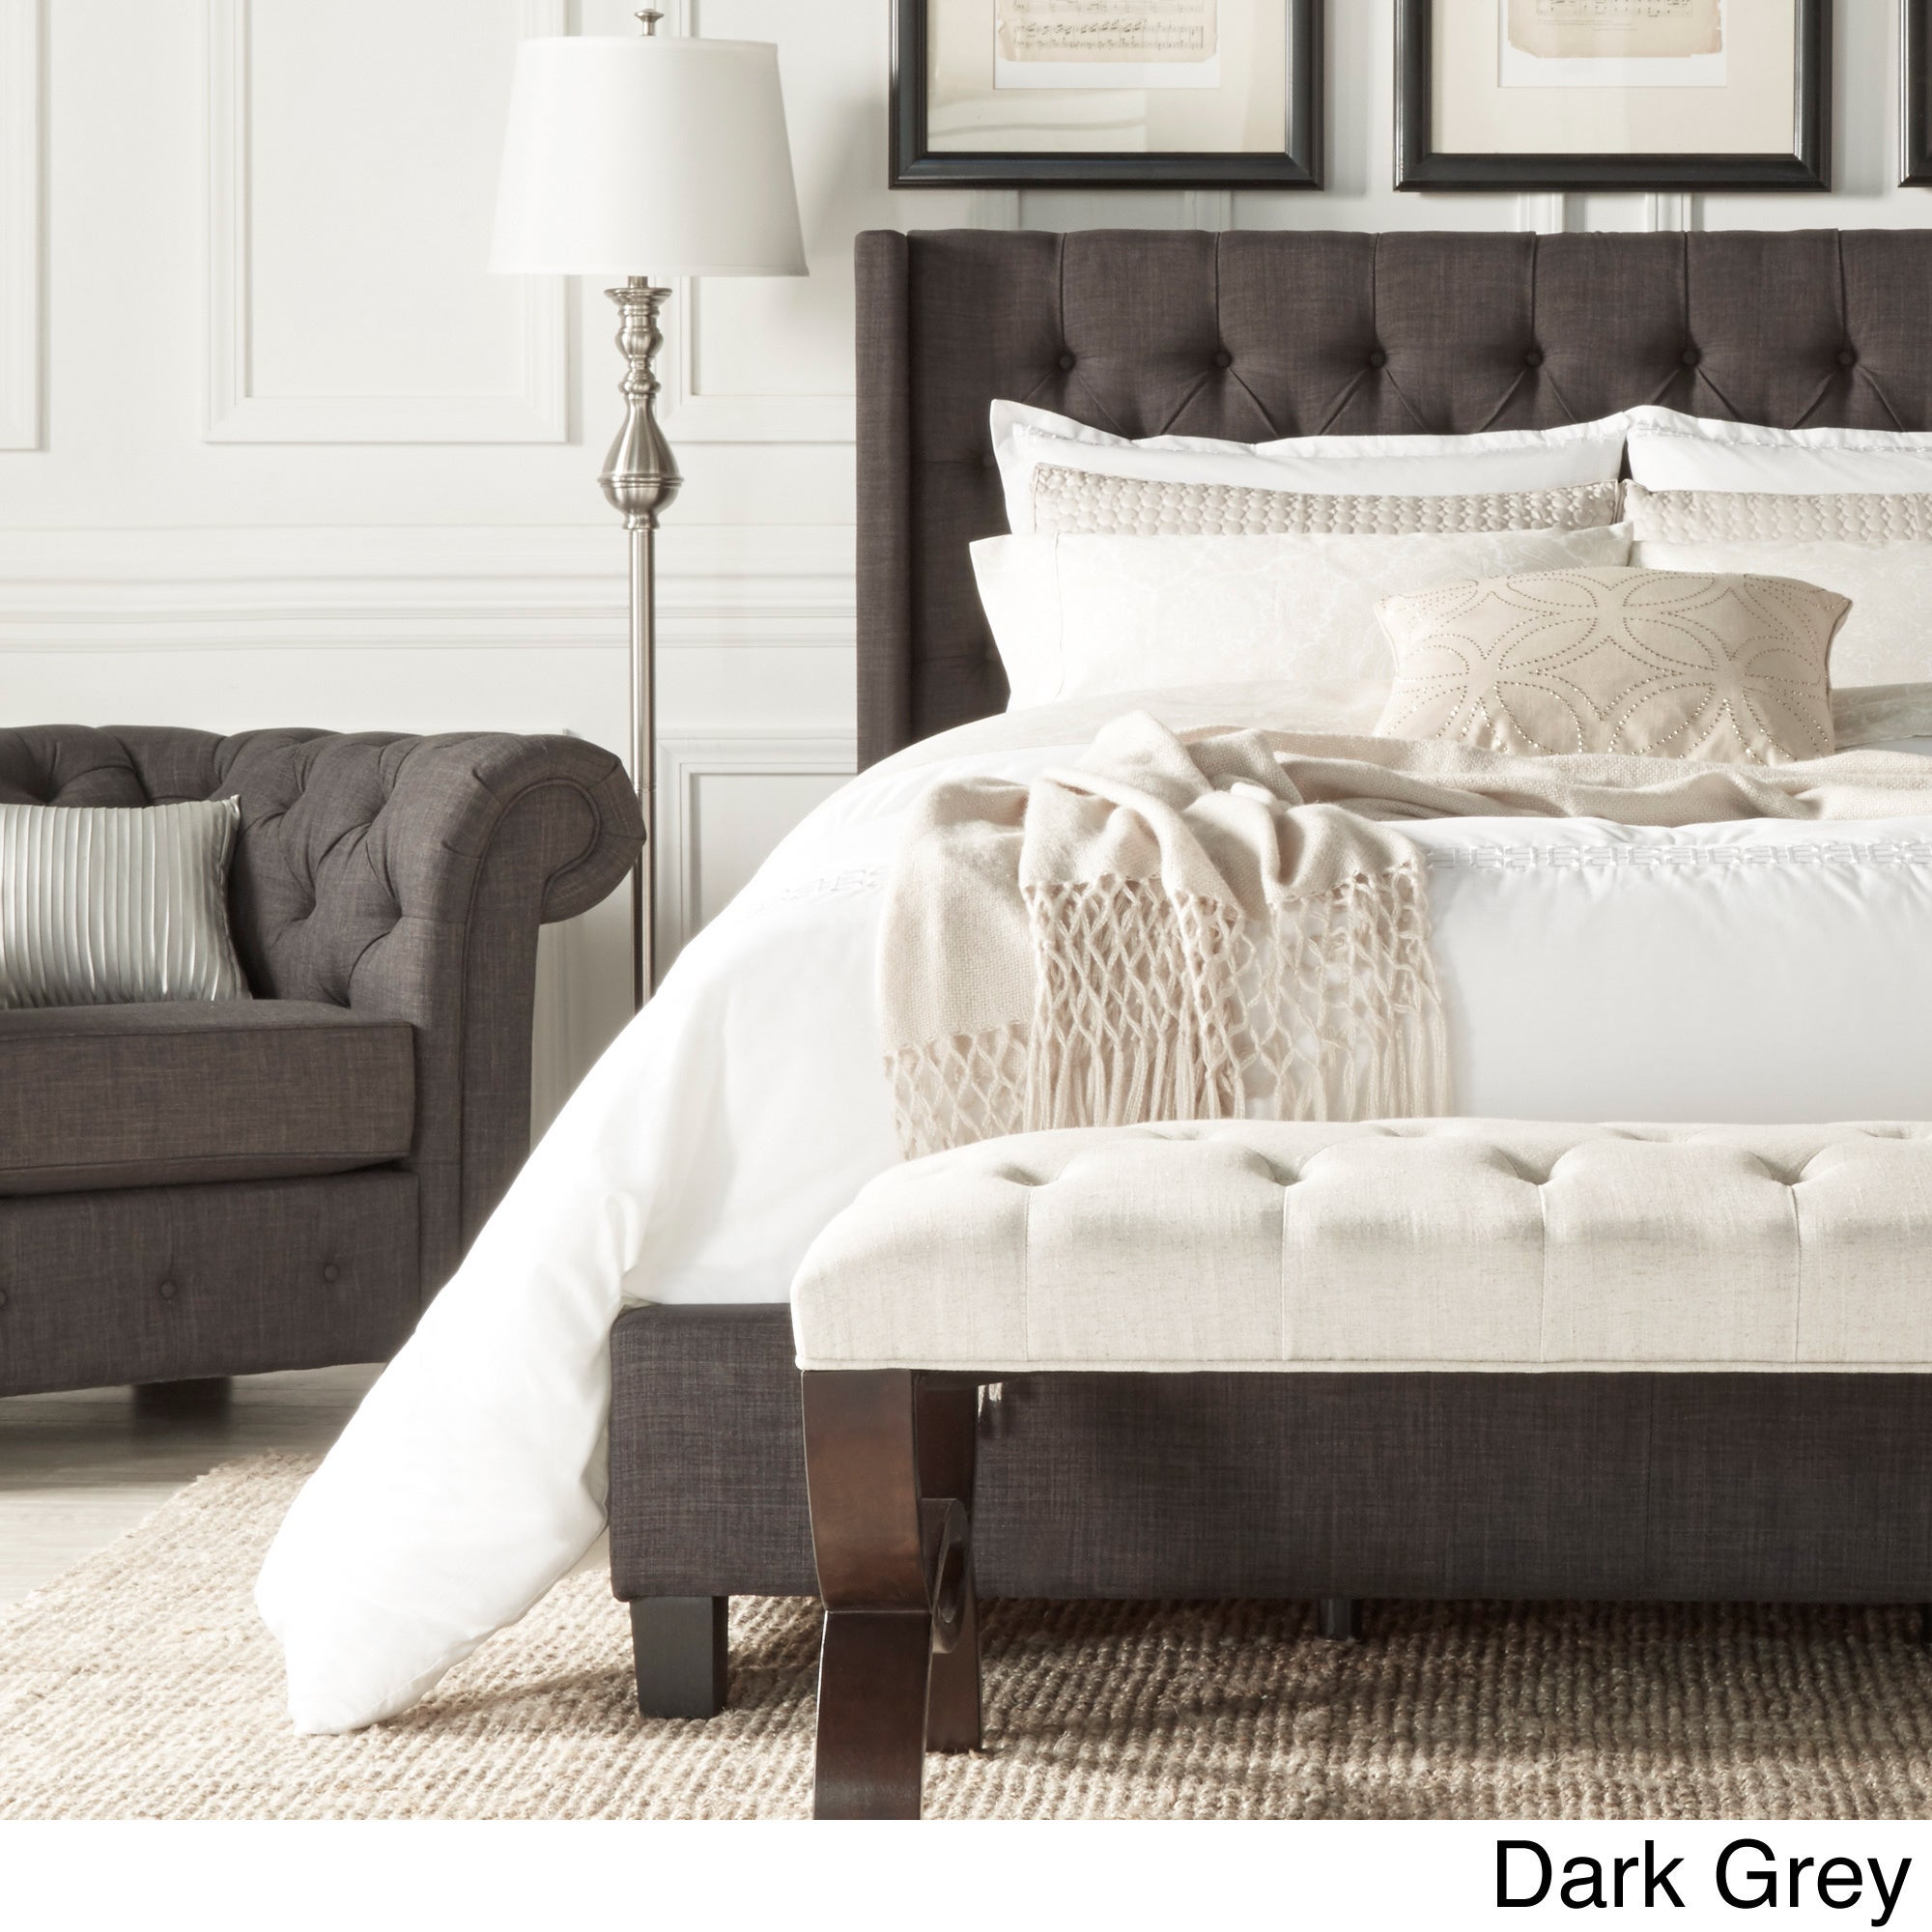 Naples Wingback Button Tufted Upholstered Queen Size Bed by iNSPIRE Q  Artisan - Free Shipping Today - Overstock.com - 16659700